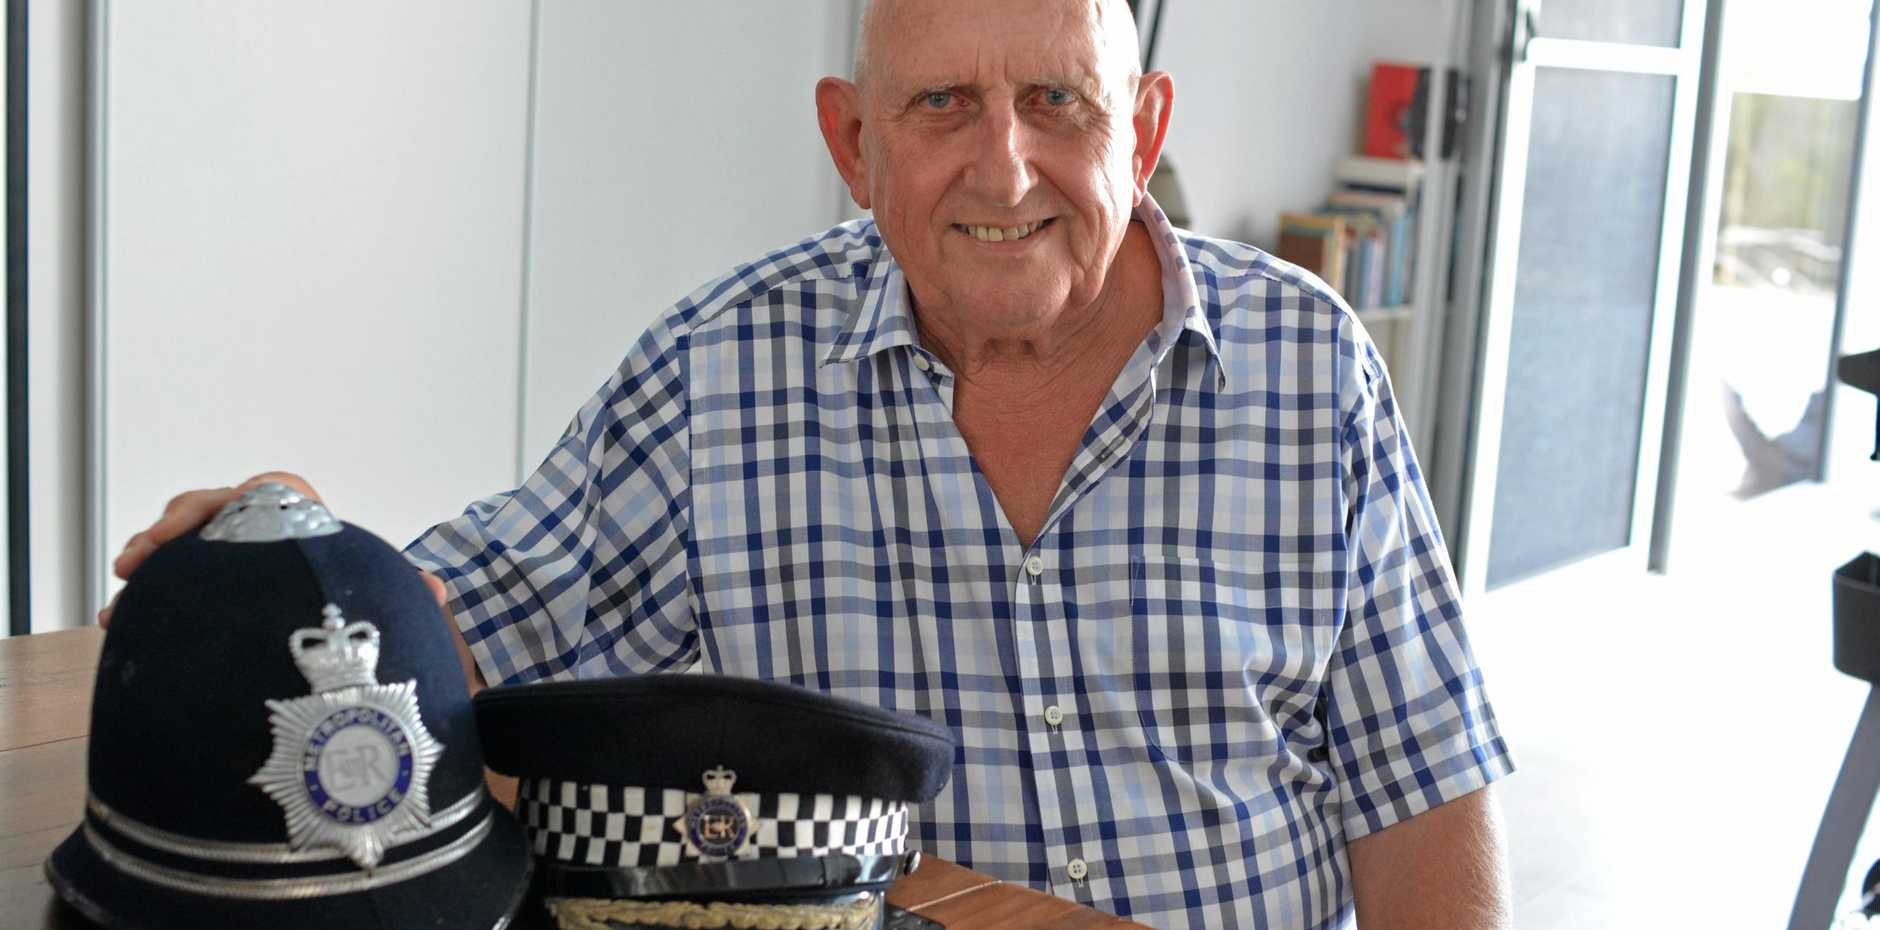 CHANGE OF PACE: After spending most of his life in London working for the Metropolitan Police Force, Alan Fry decided he would call the Lockyer Valley home.